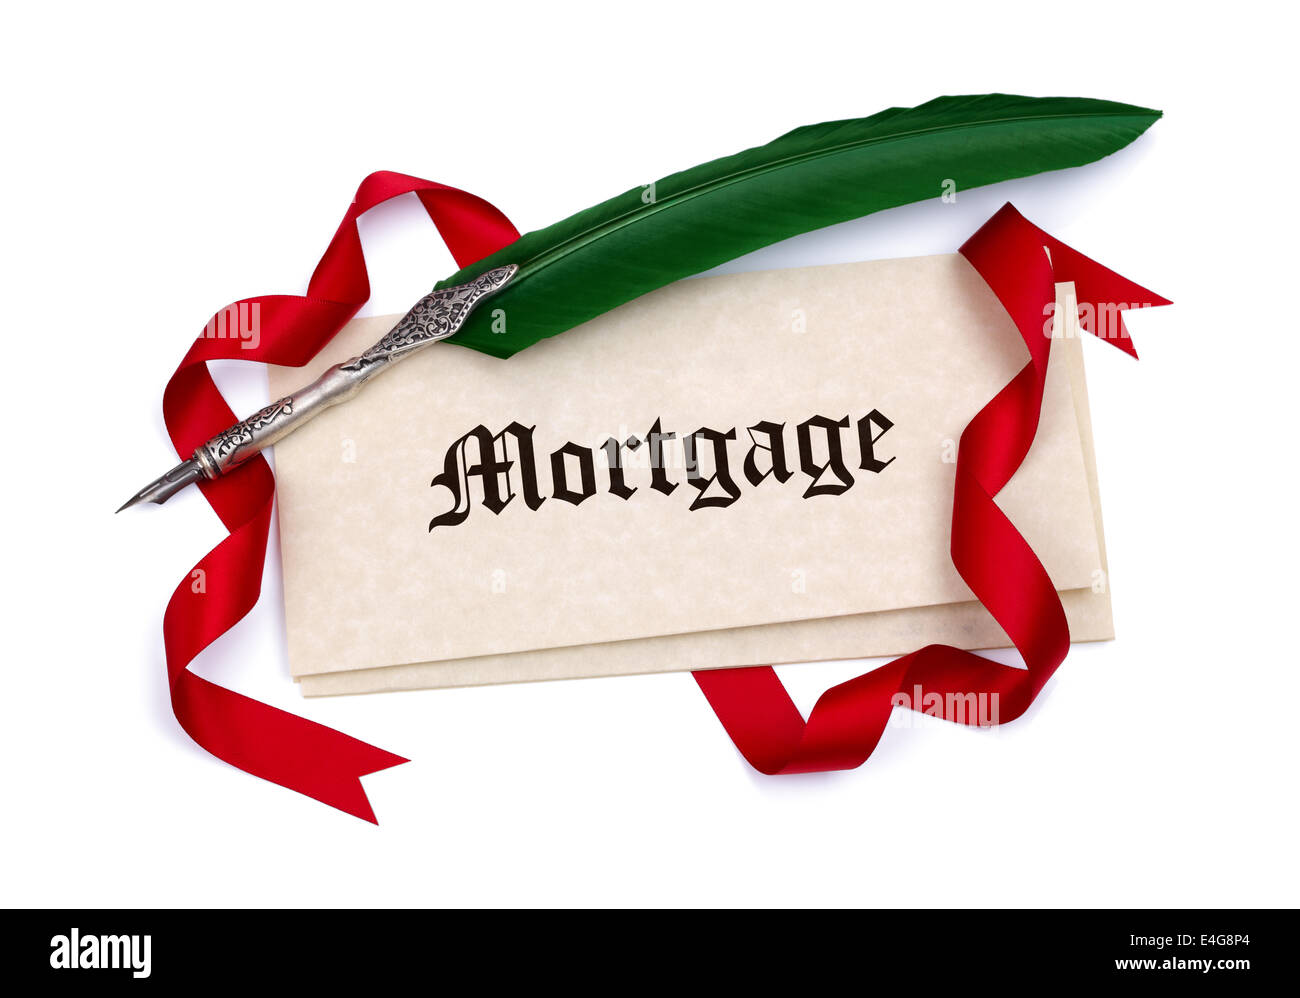 Mortgage document papers and quill pen - Stock Image